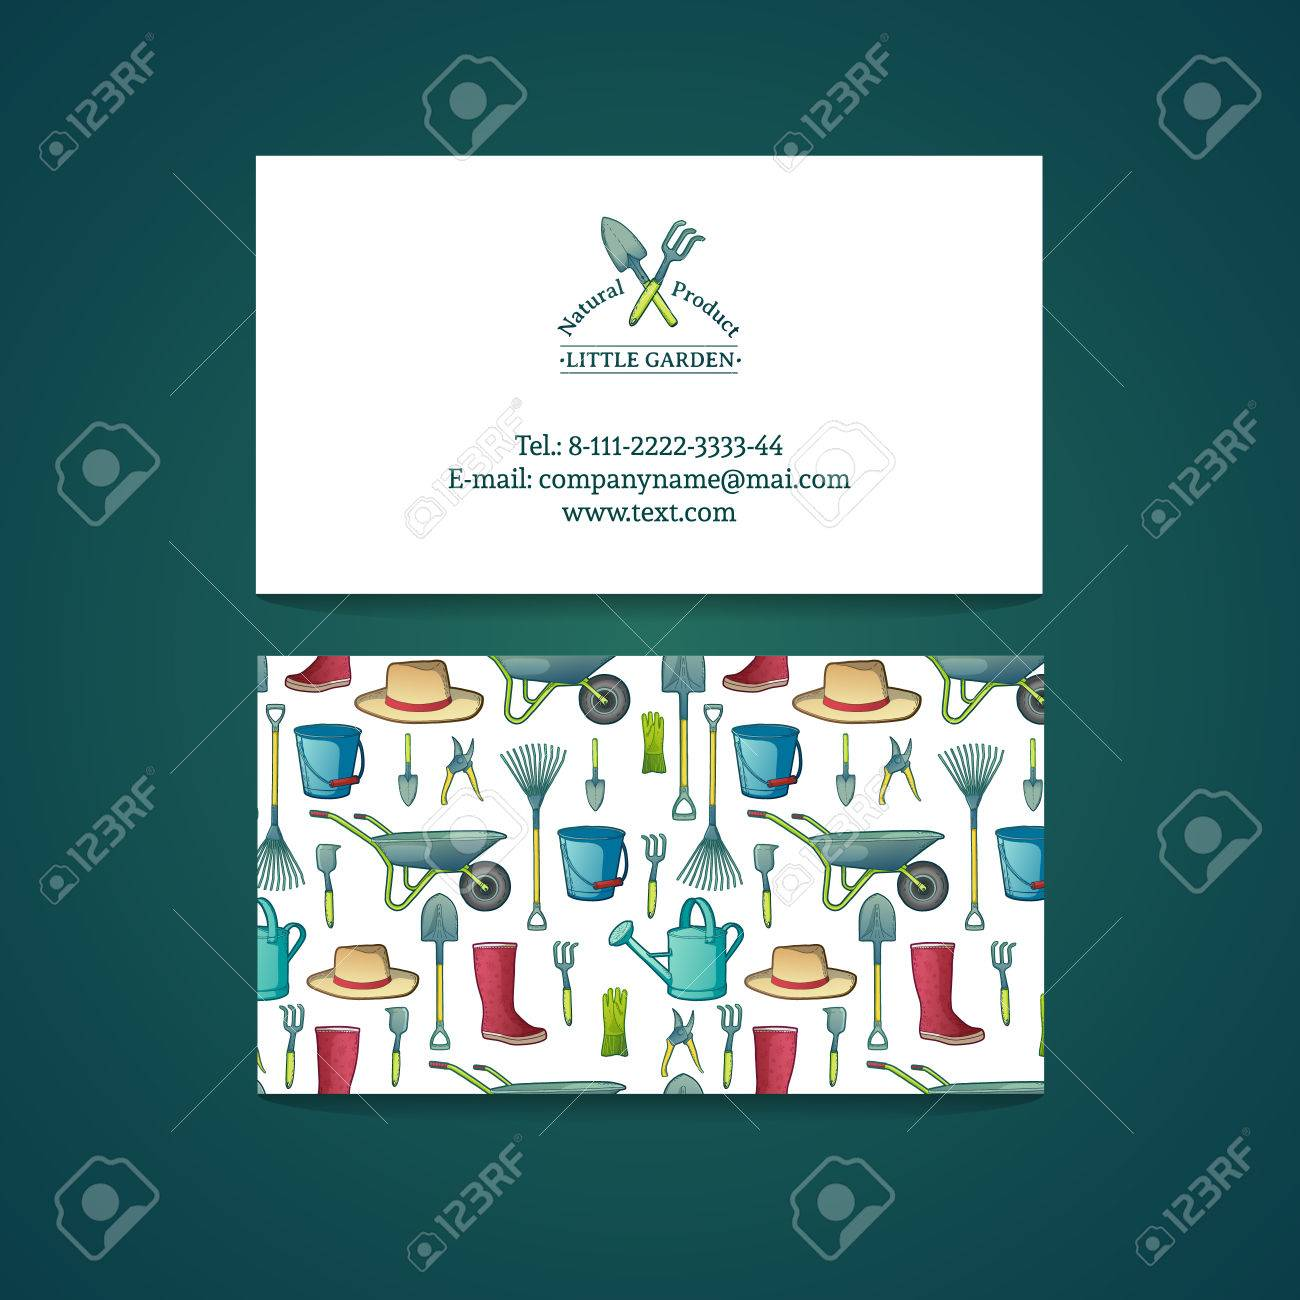 Template design business card with garden tools pattern and template design business card with garden tools pattern and card gardening vector place reheart Choice Image